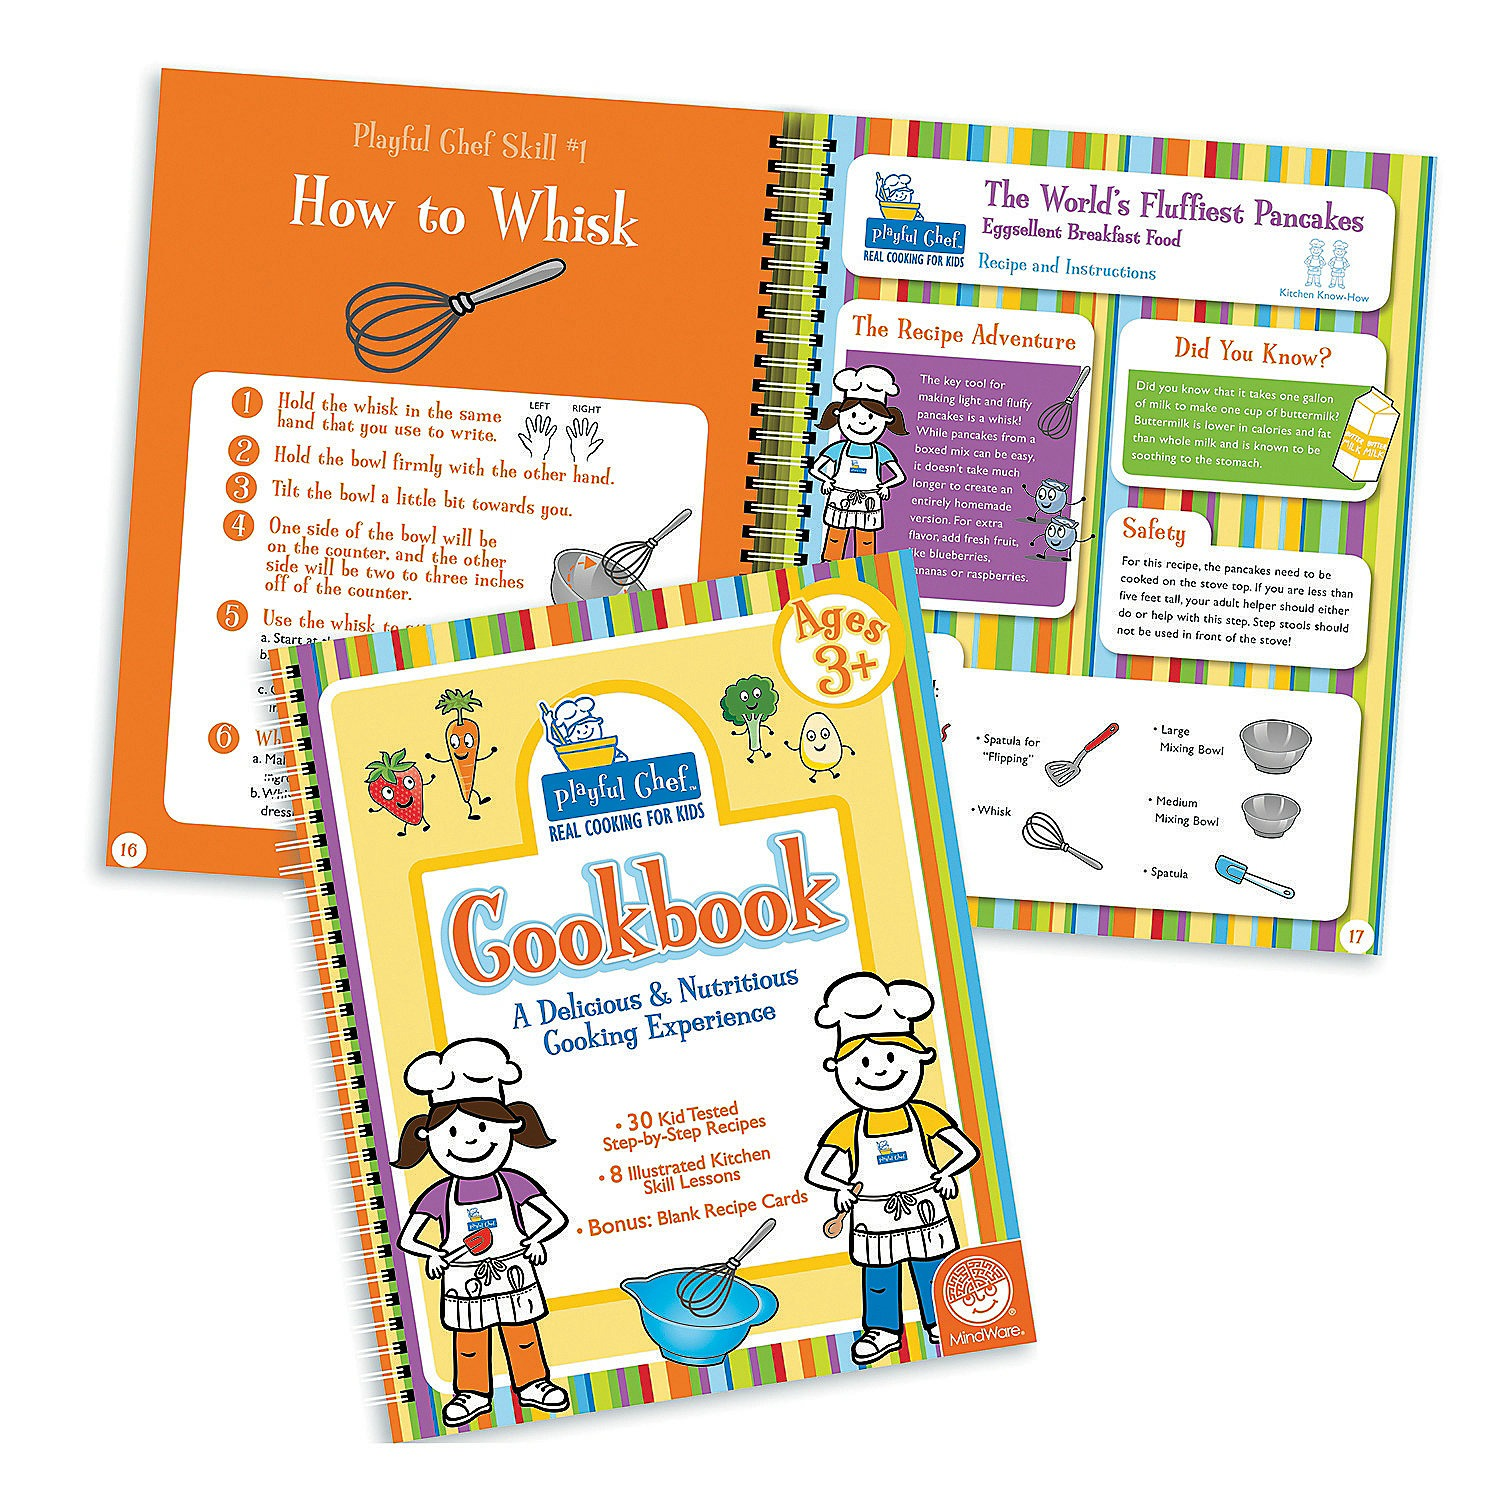 Playful Chef Cookbook: One of the gifts you can buy to make the holiday of a US child in need or in foster care through Daymaker